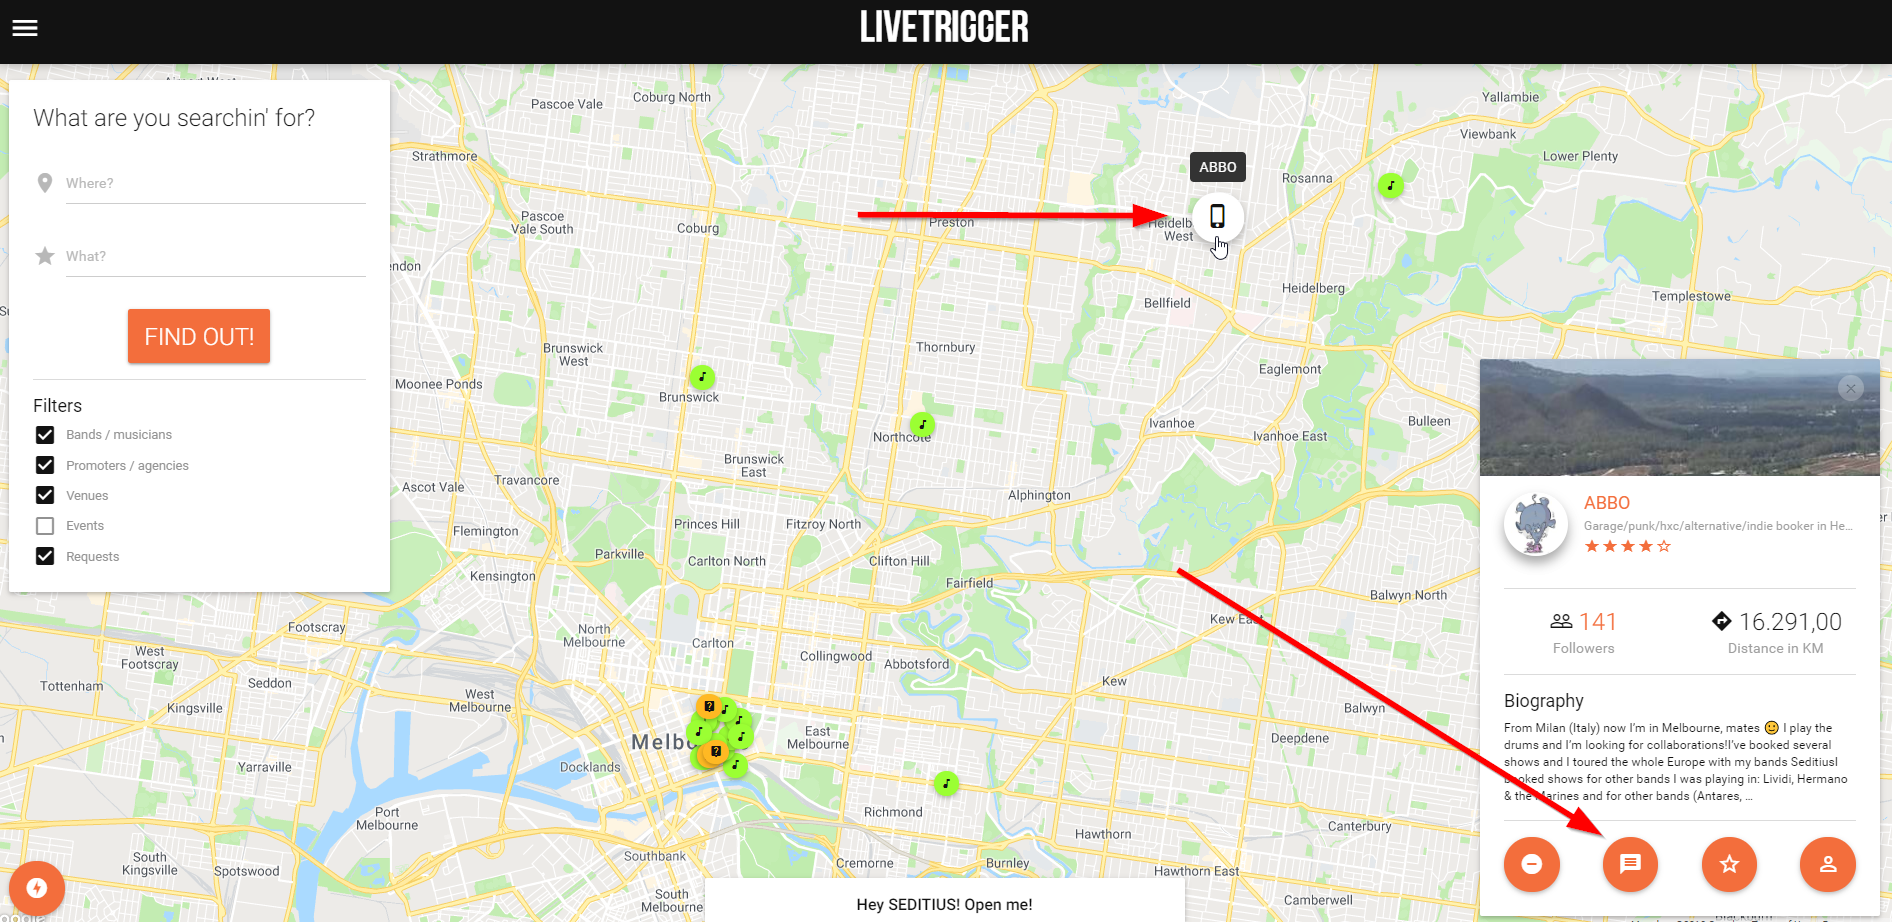 Here's how you can find abbo on LiveTrigger